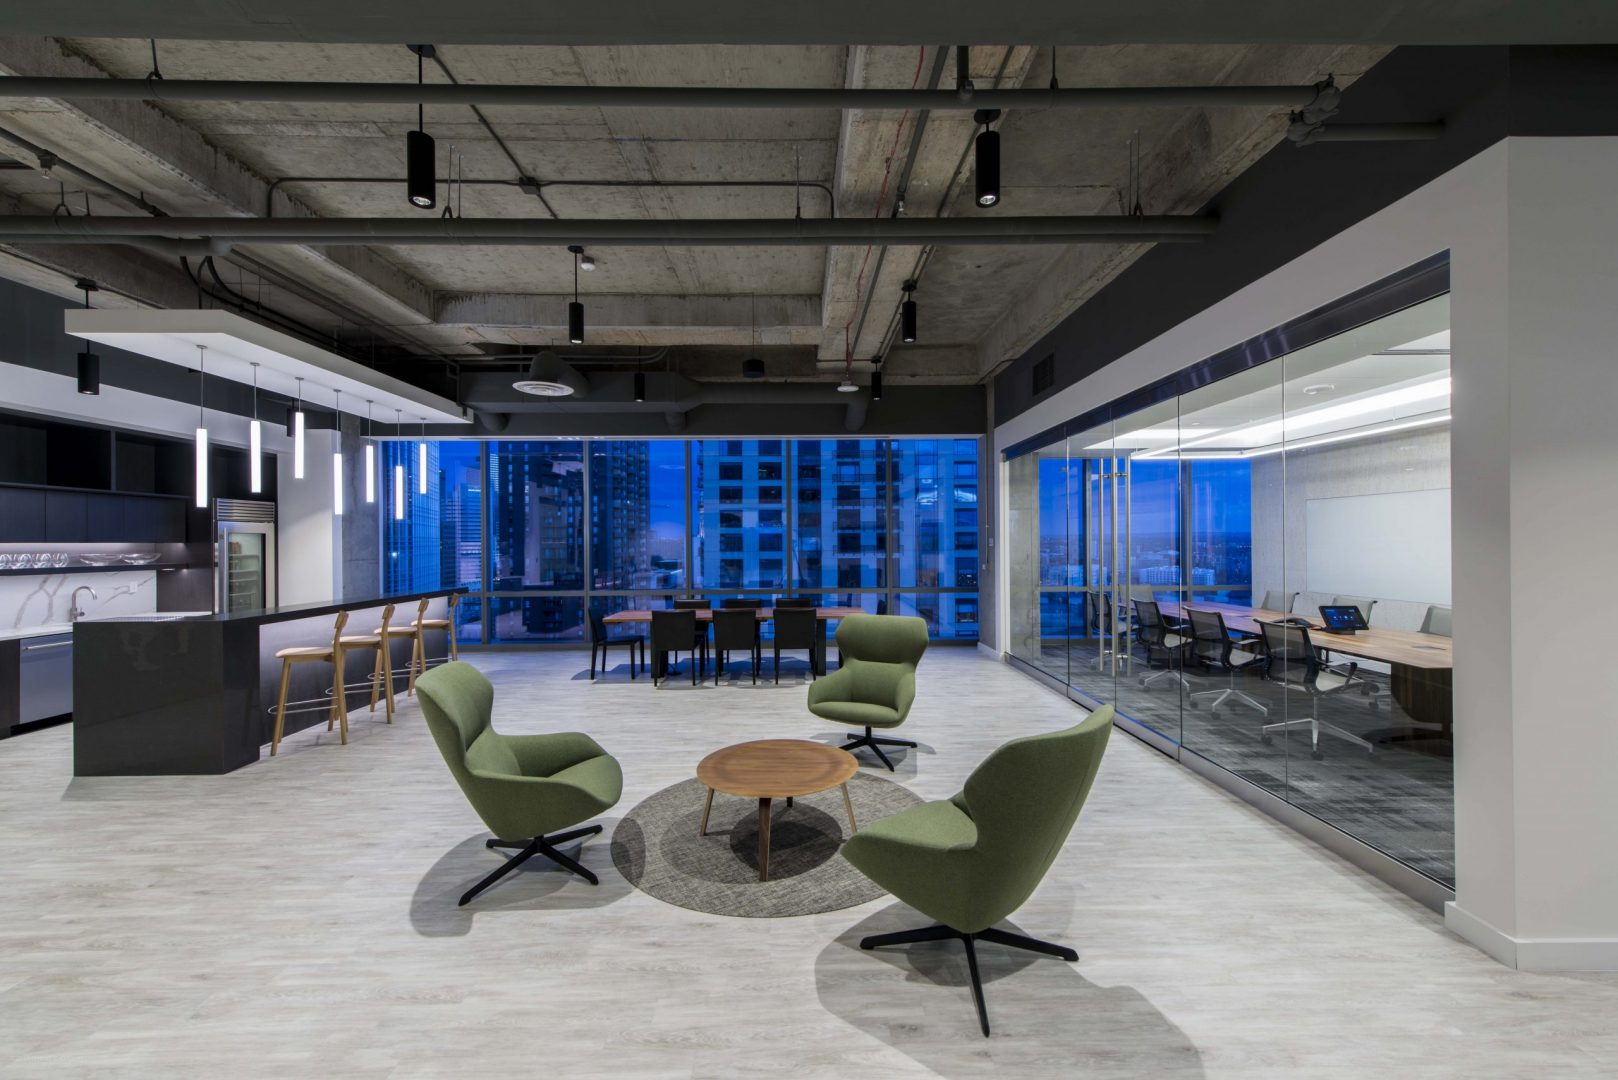 Investment Management Company Denver Corporate Interior Design Lobby Lounge